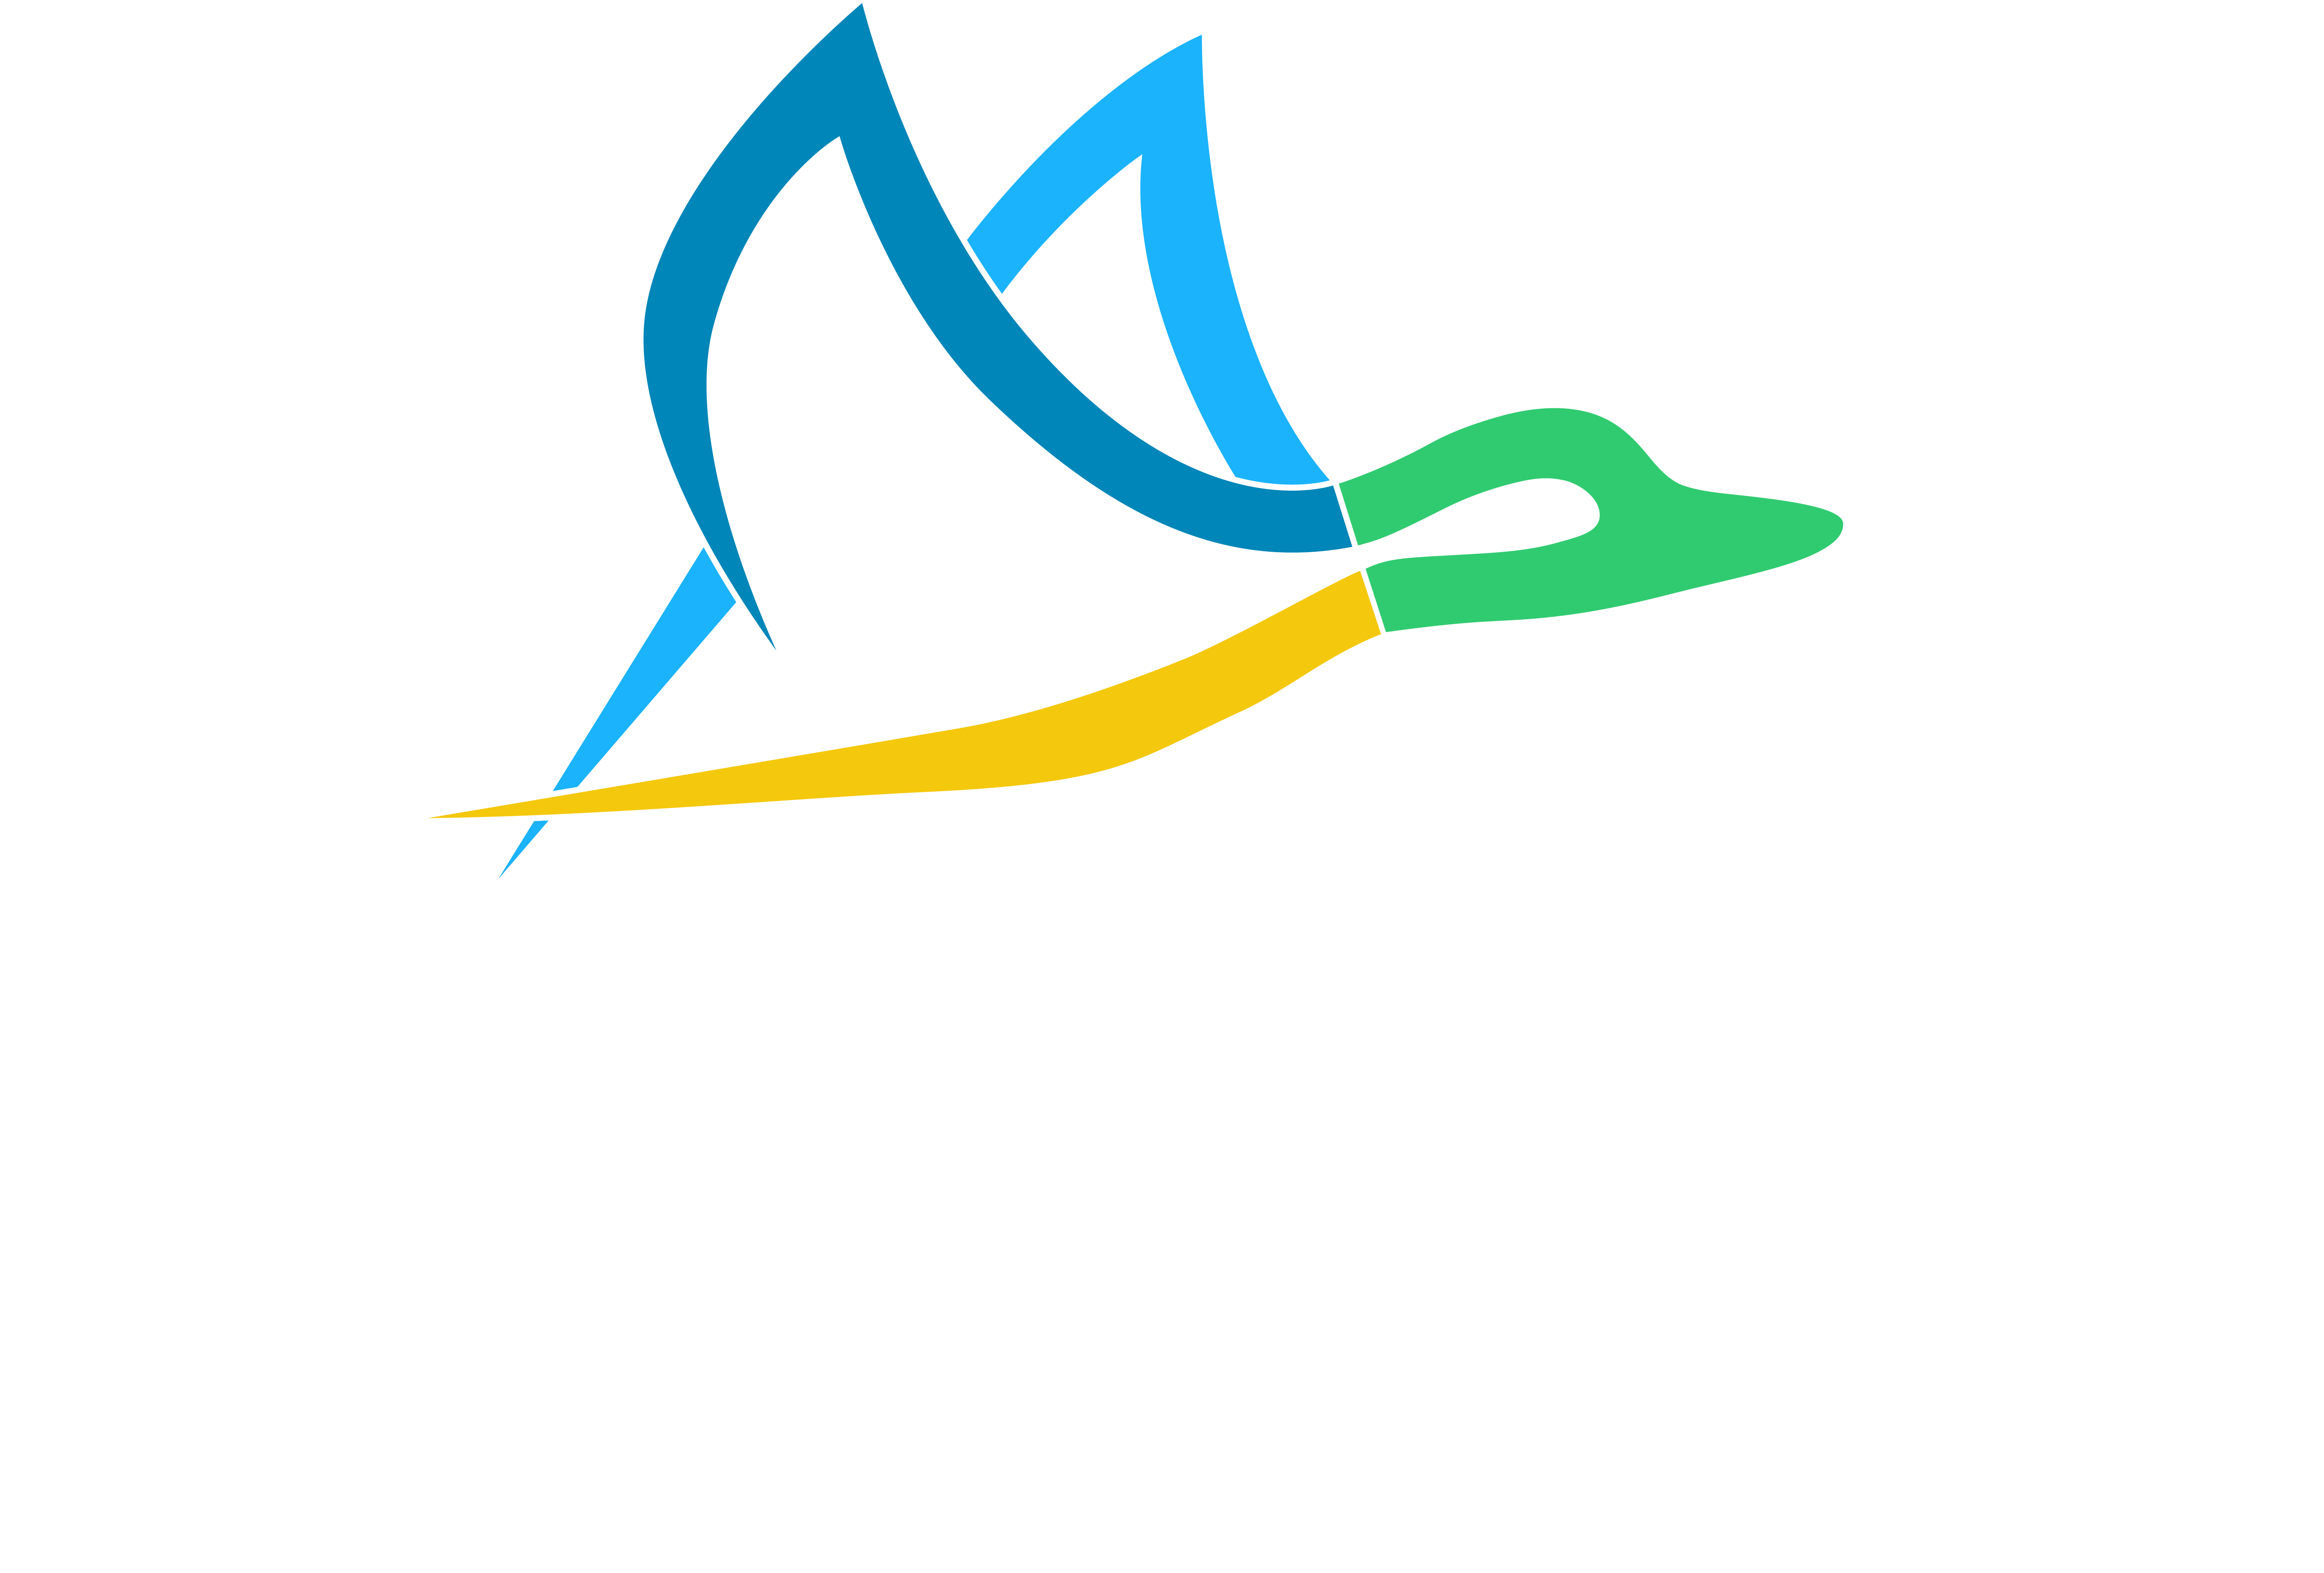 Light Dux-soup logo with tag line accelerate lead generation